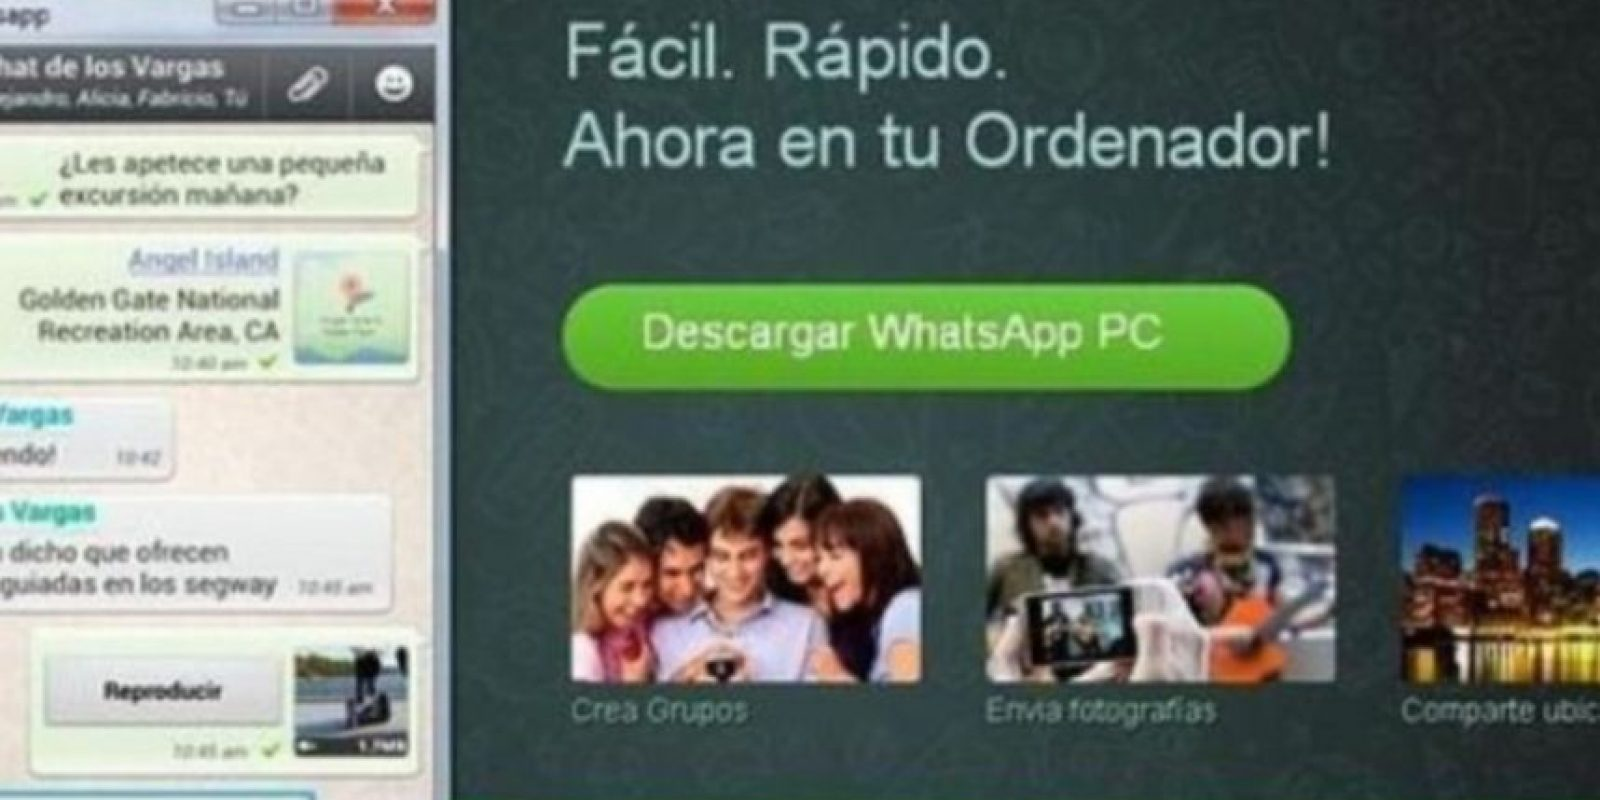 4- WhatsApp para PC. Foto: vía Tumblr.com